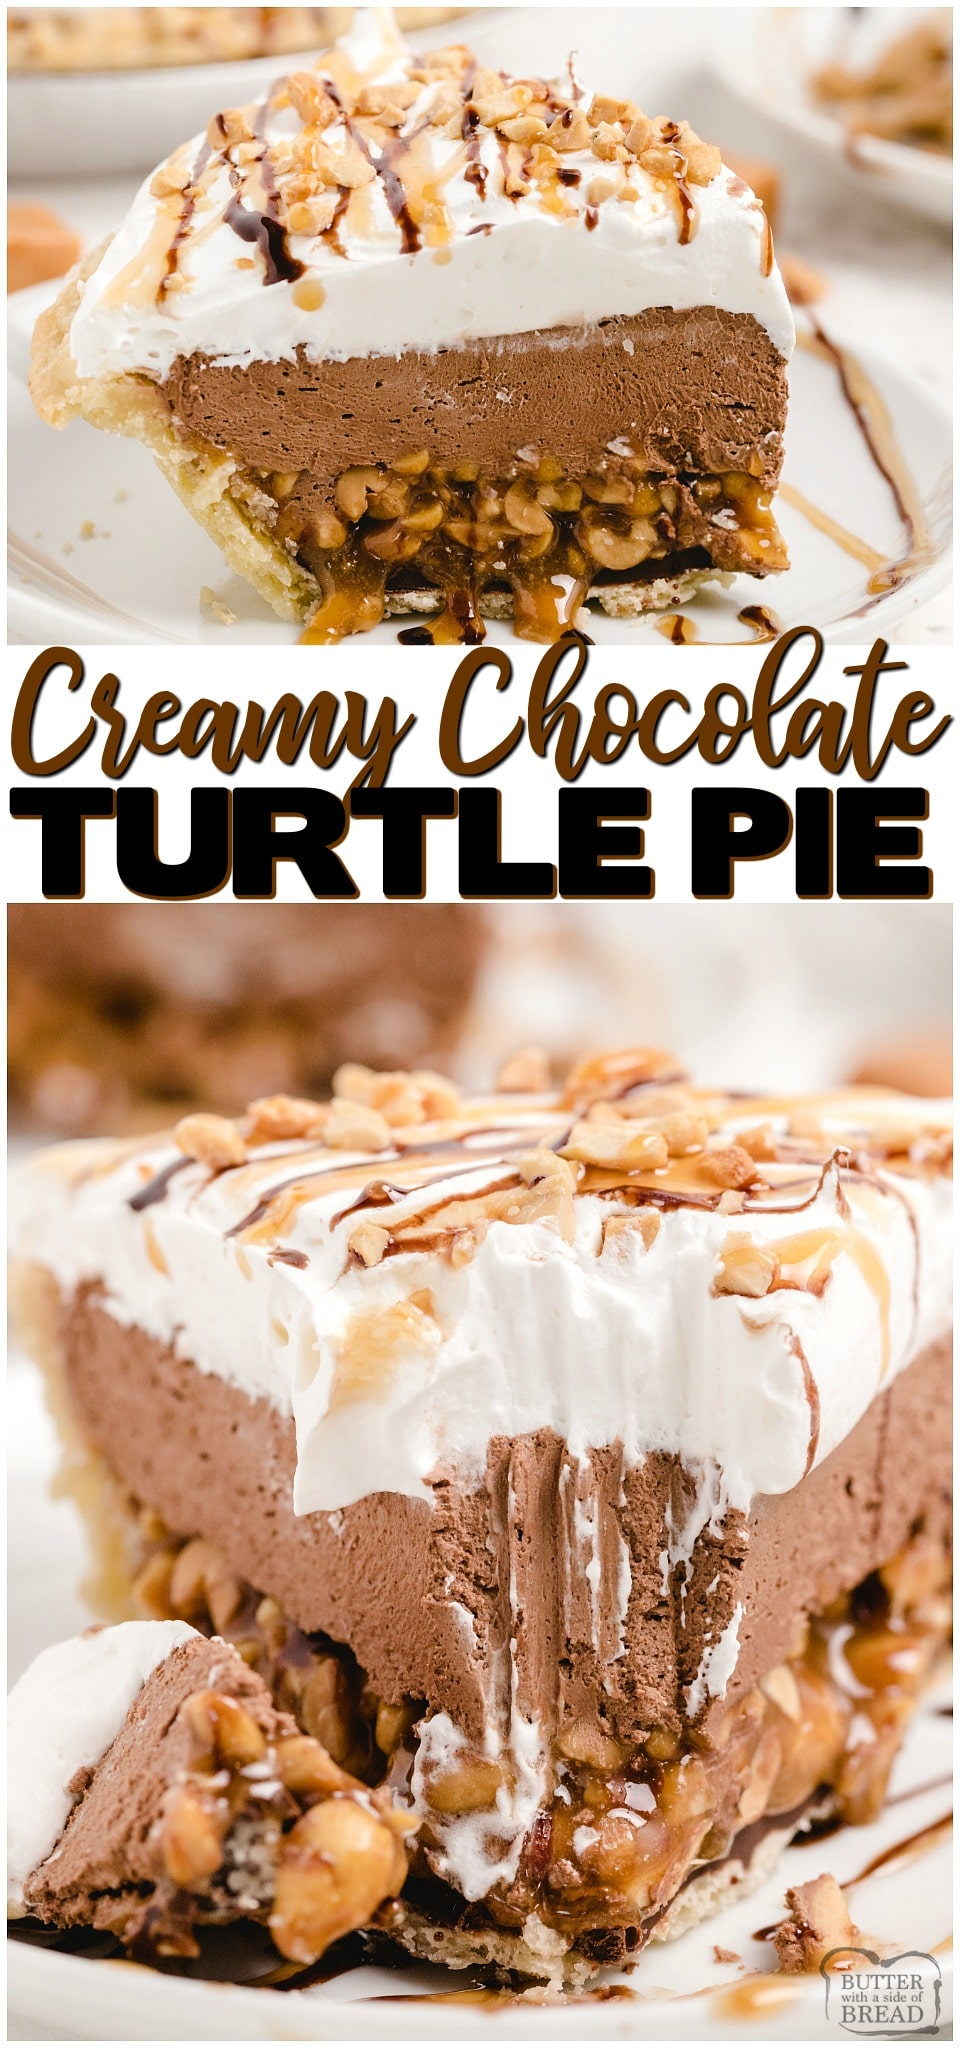 Chocolate Caramel Turtle Pie made with creamy chocolate, salted peanuts and smooth caramel for a delicious 3 layered pie that everyone raves about!